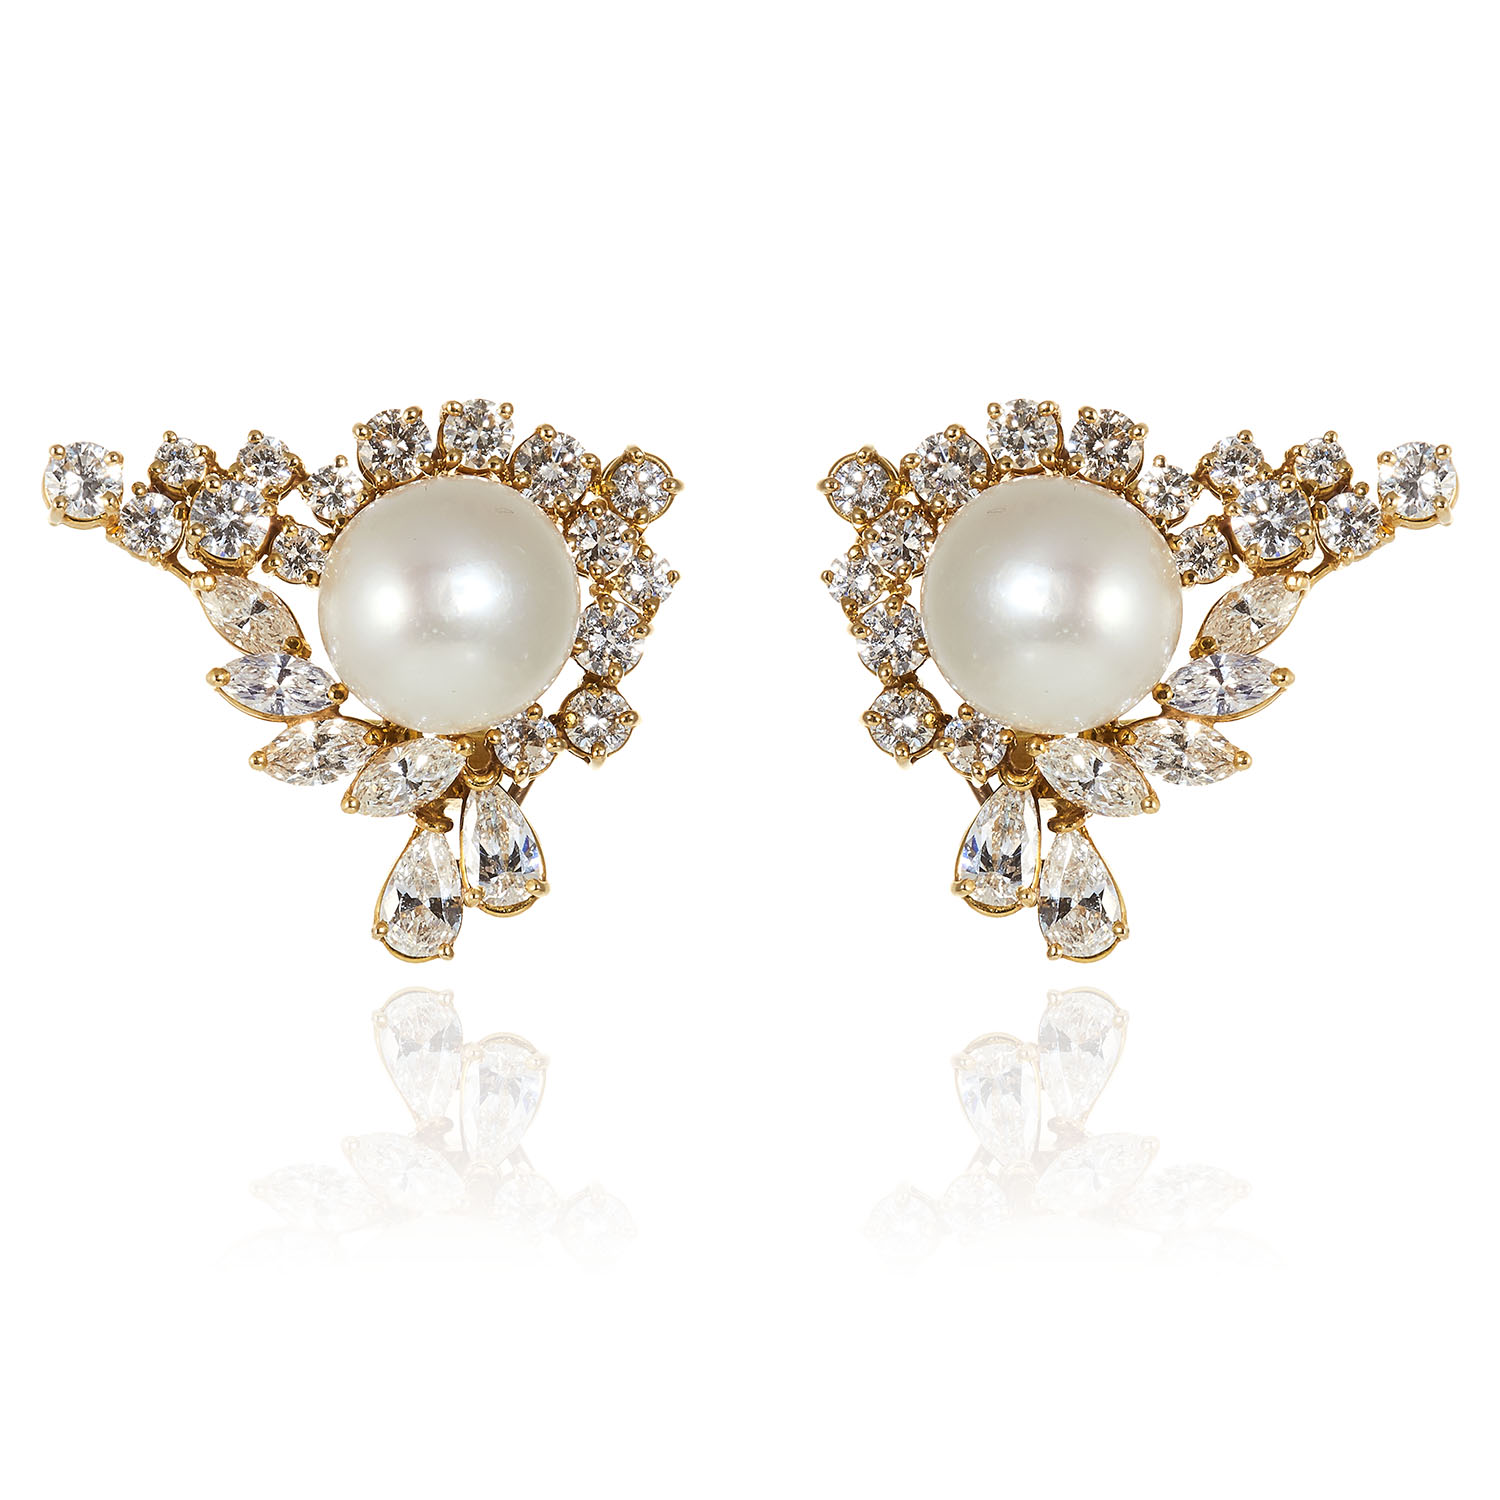 A PAIR OF VINTAGE PEARL AND DIAMOND EARRINGS in 18ct yellow gold, each comprising of central pearl